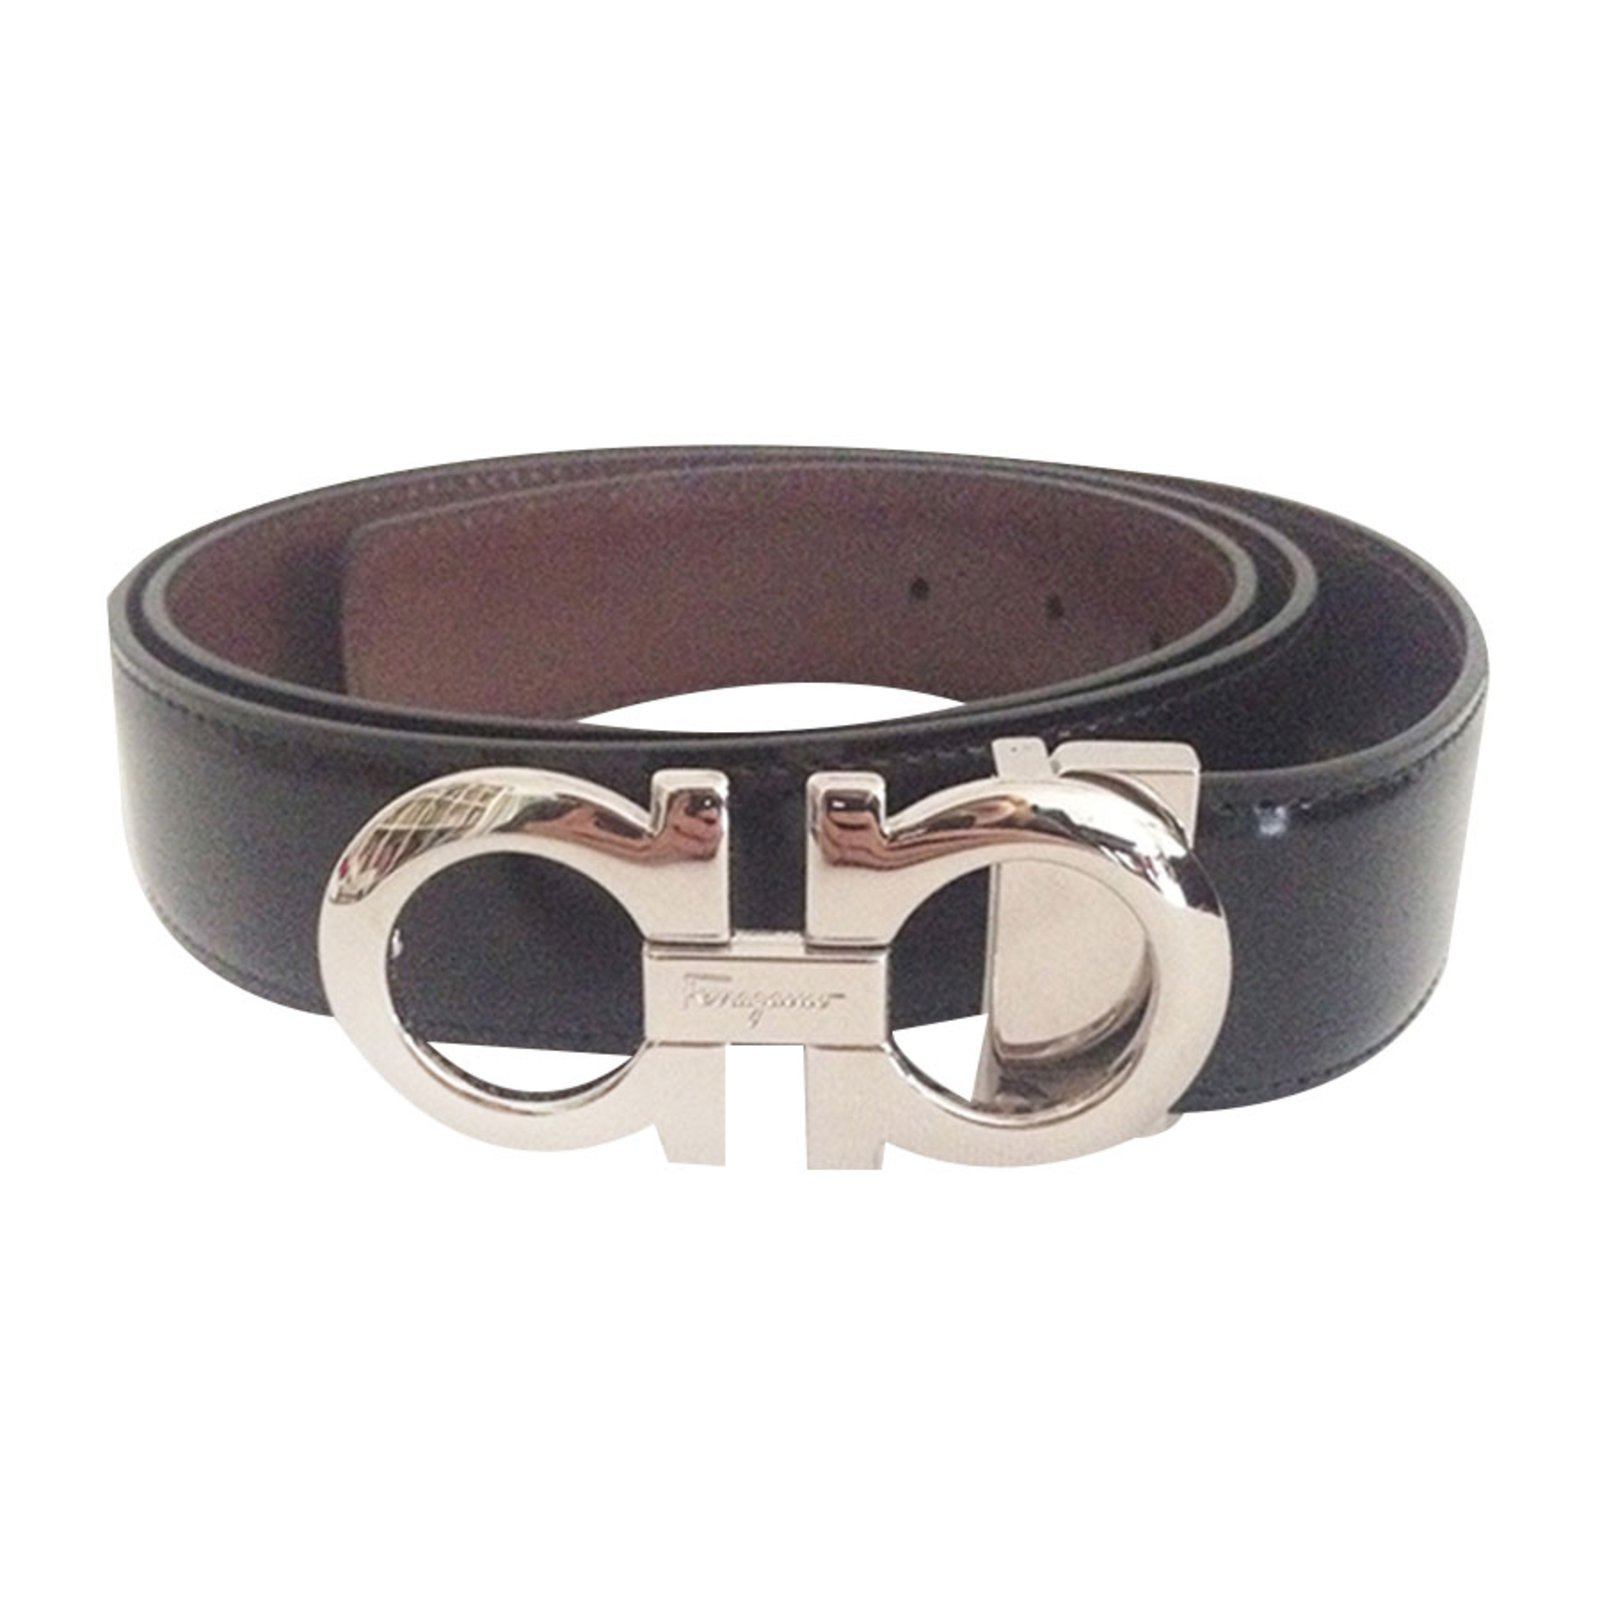 save up to 80% new concept fantastic savings Ceinture